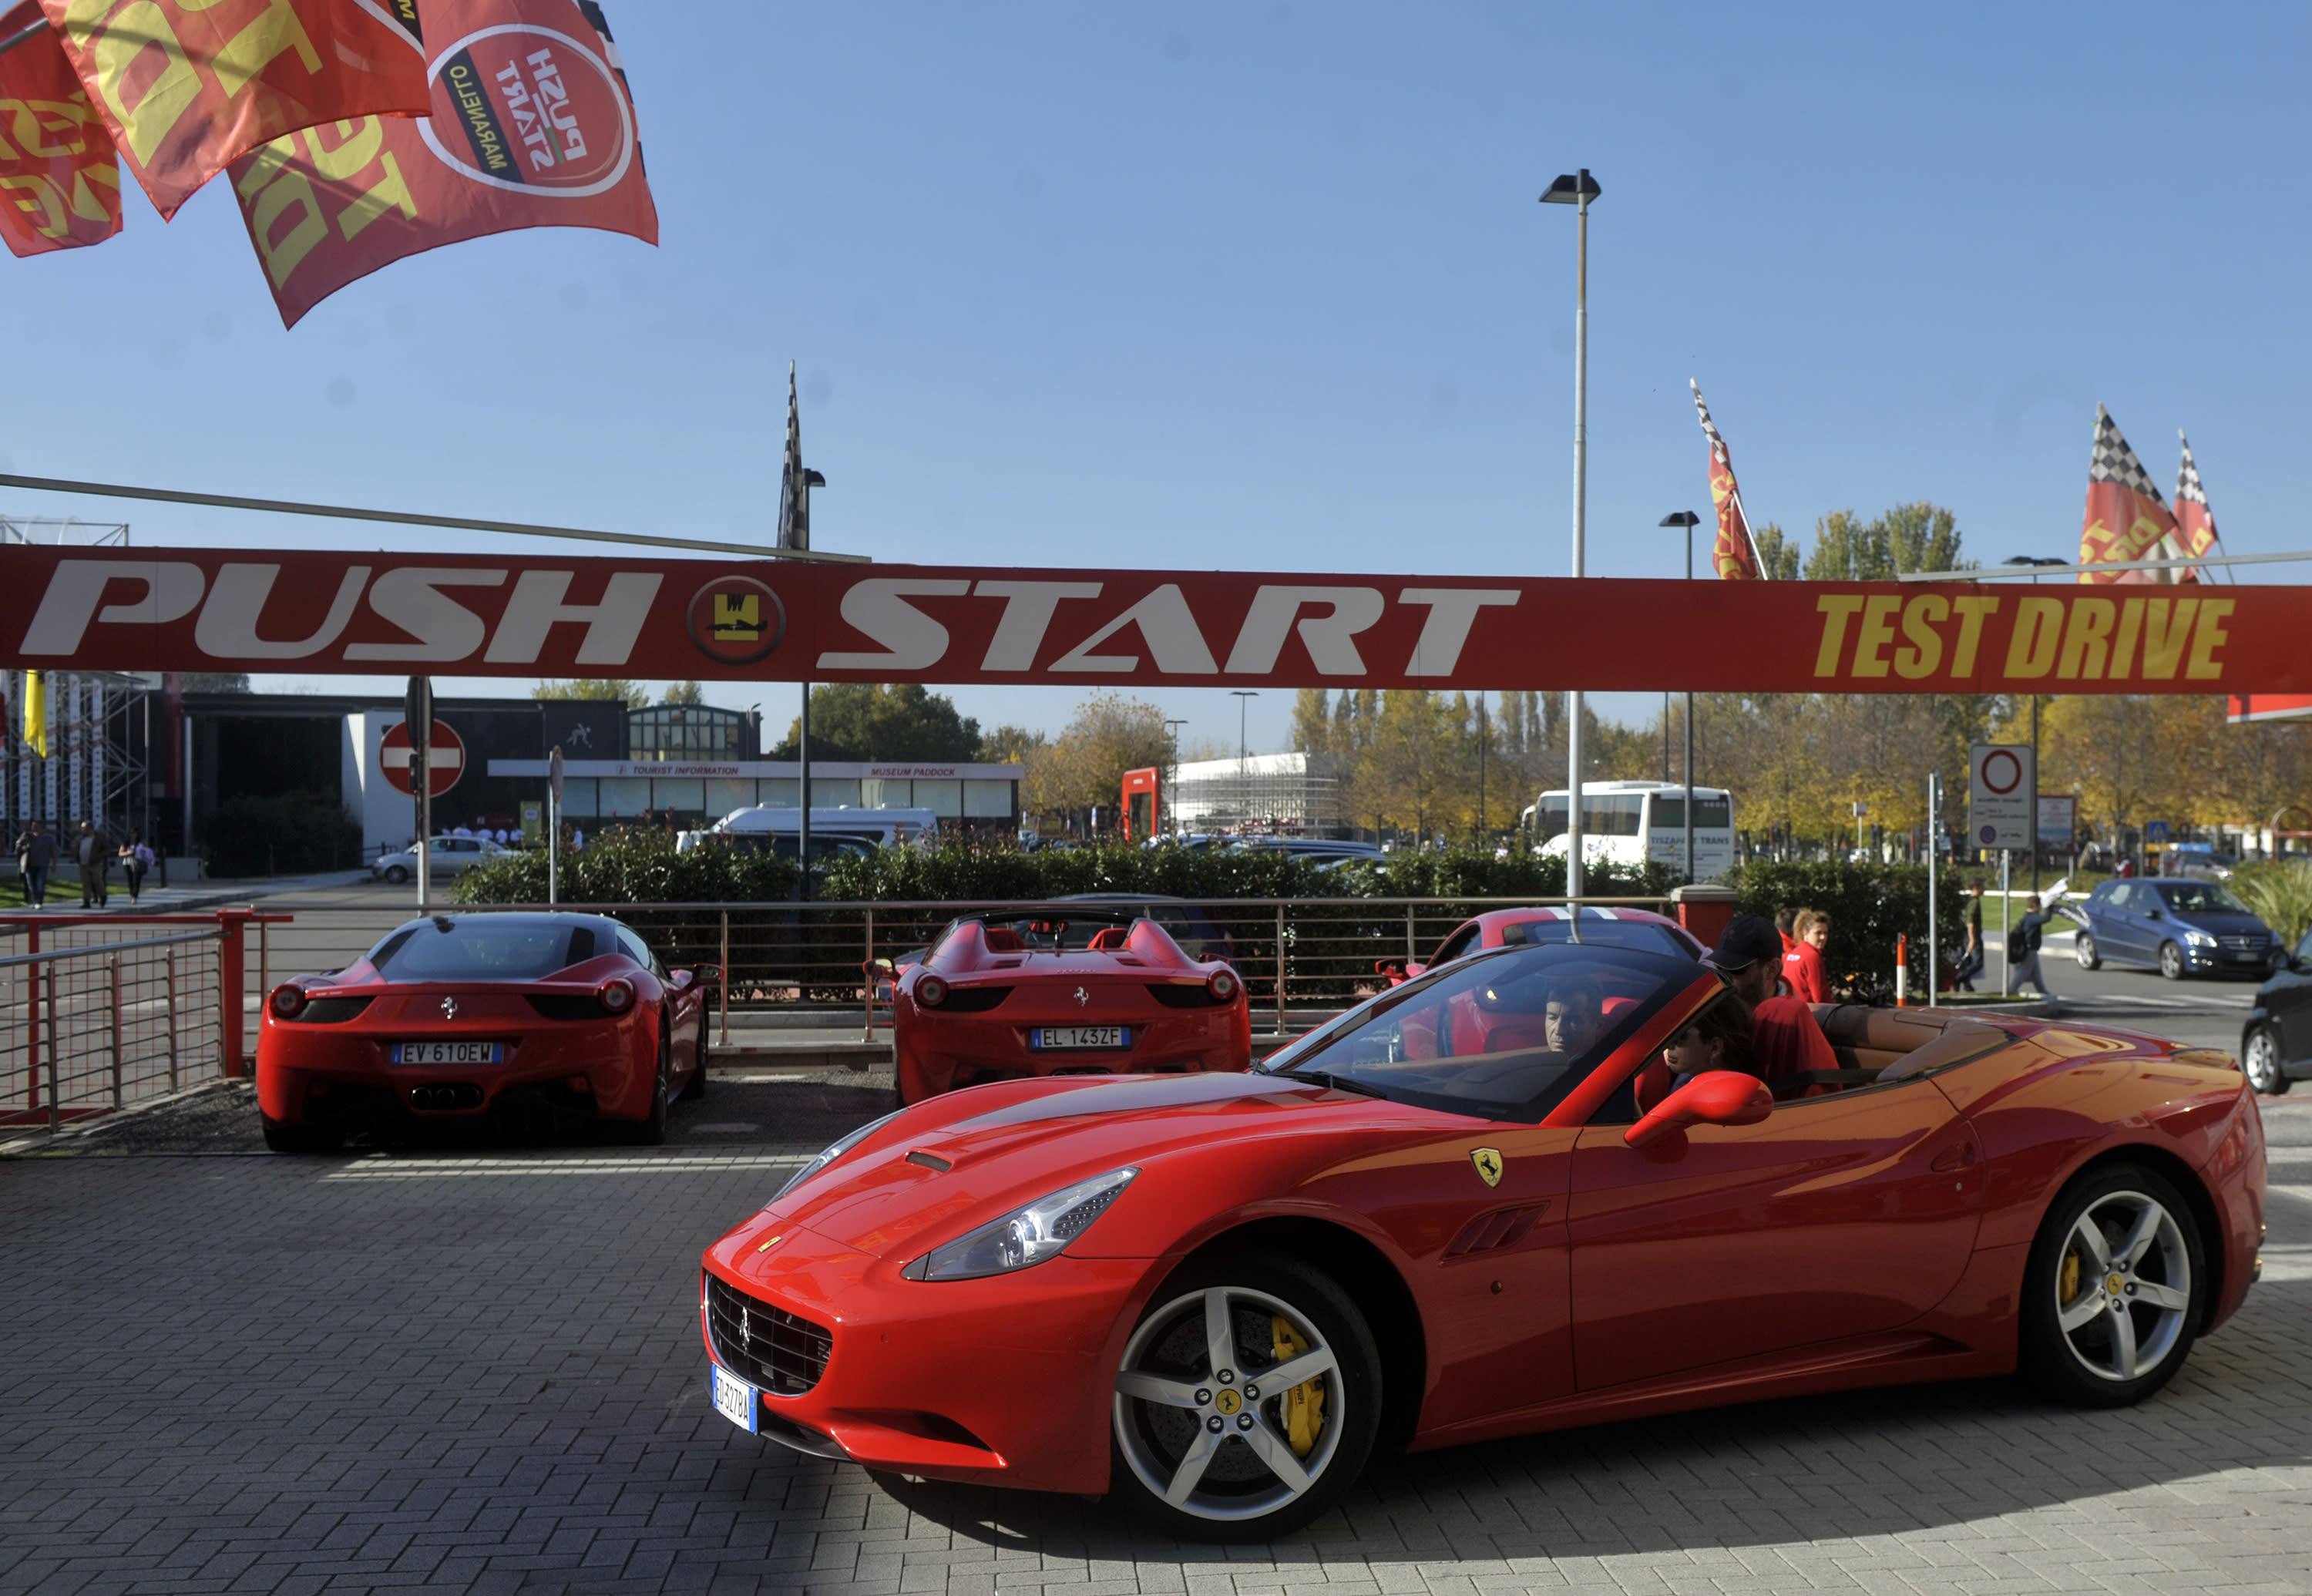 Ferrari hometown overwhelmed by roar of test-driving fans